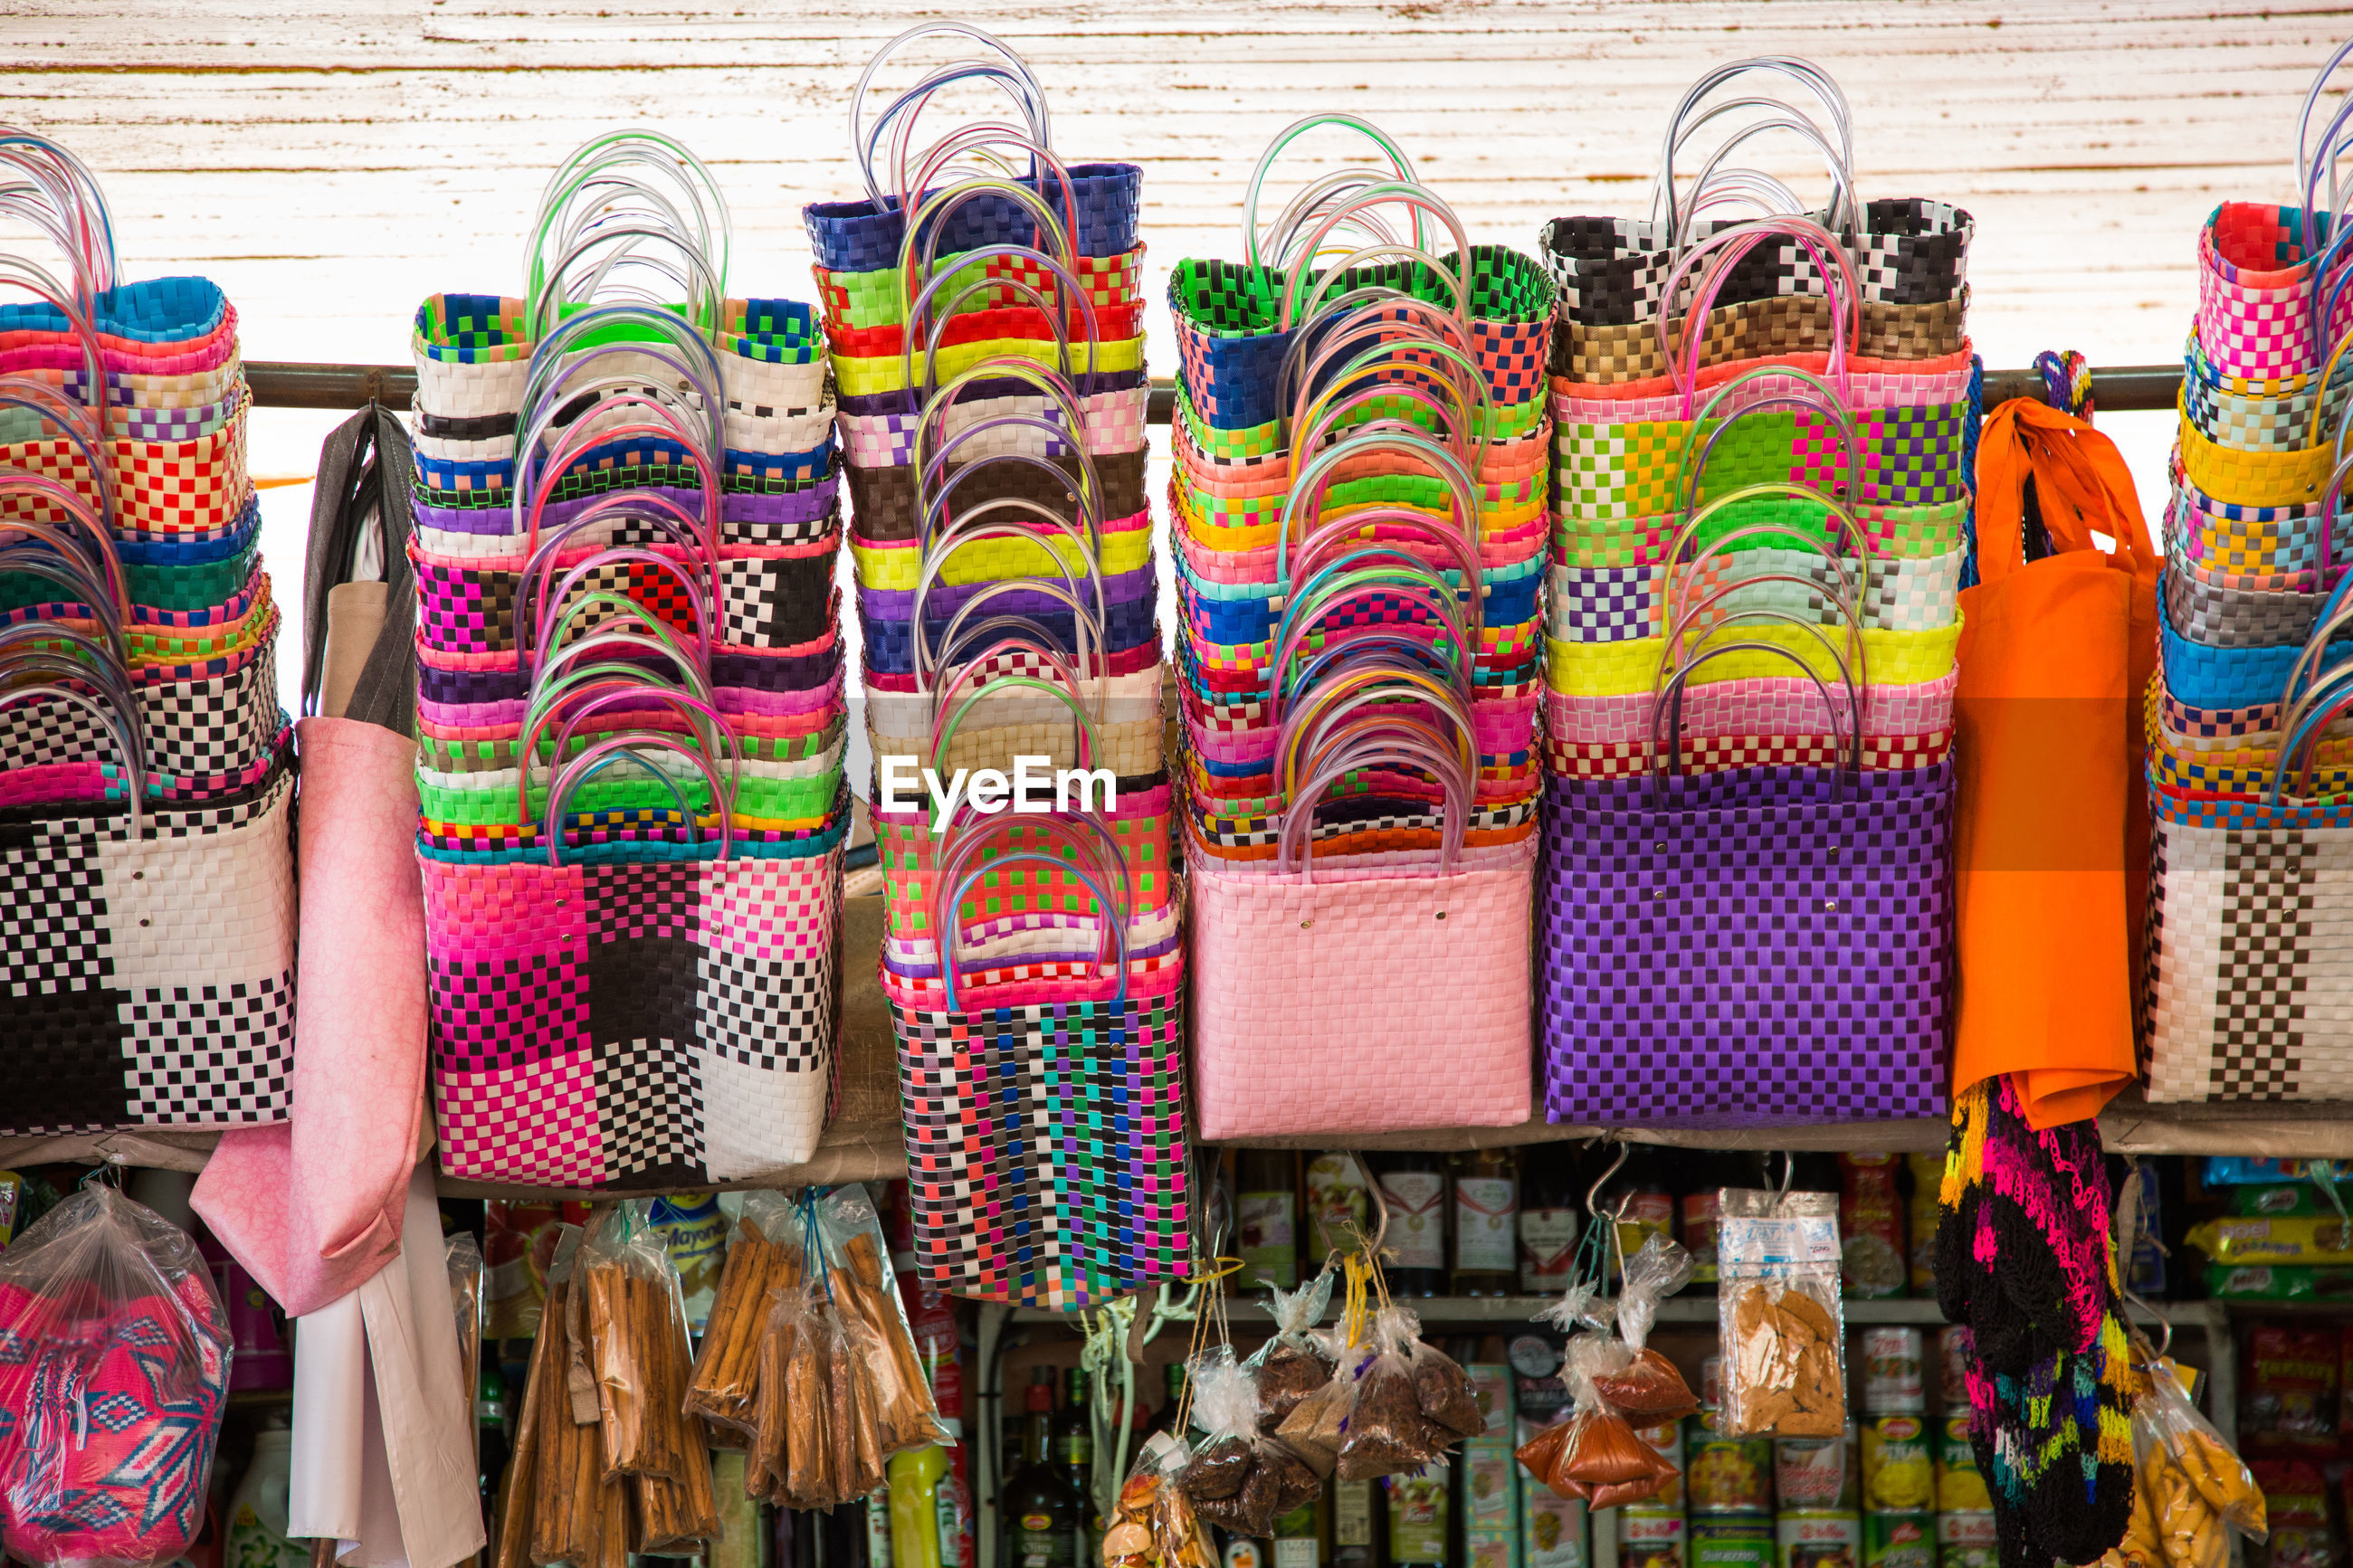 VARIOUS DISPLAYED FOR SALE AT MARKET